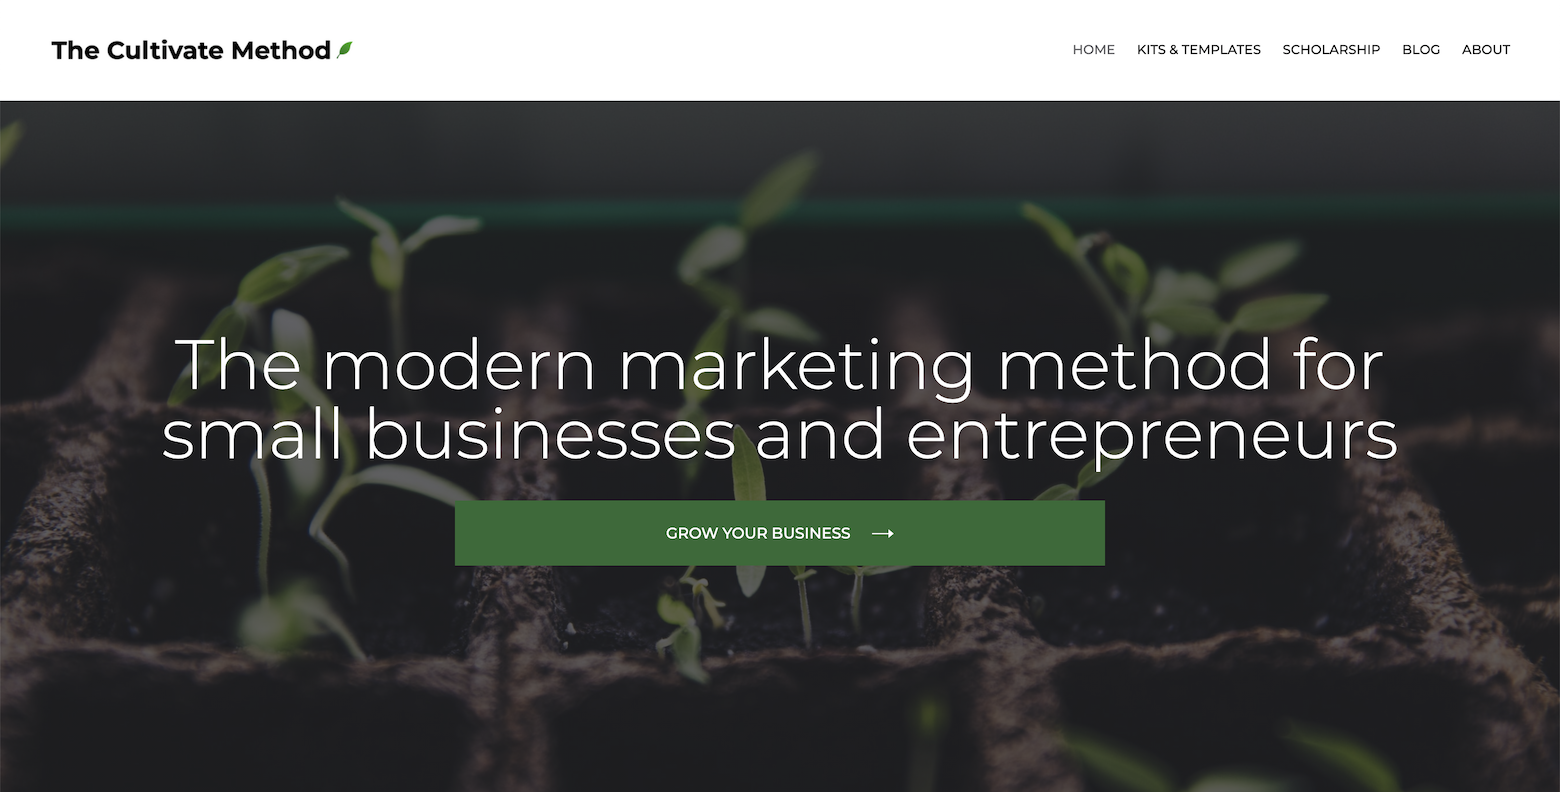 Screenshot of the homepage of Ada's blog, The Cultivate Method. This page has a background of plant sprouts and the headline: The modern marketing method for small businesses and entrepreneurs.